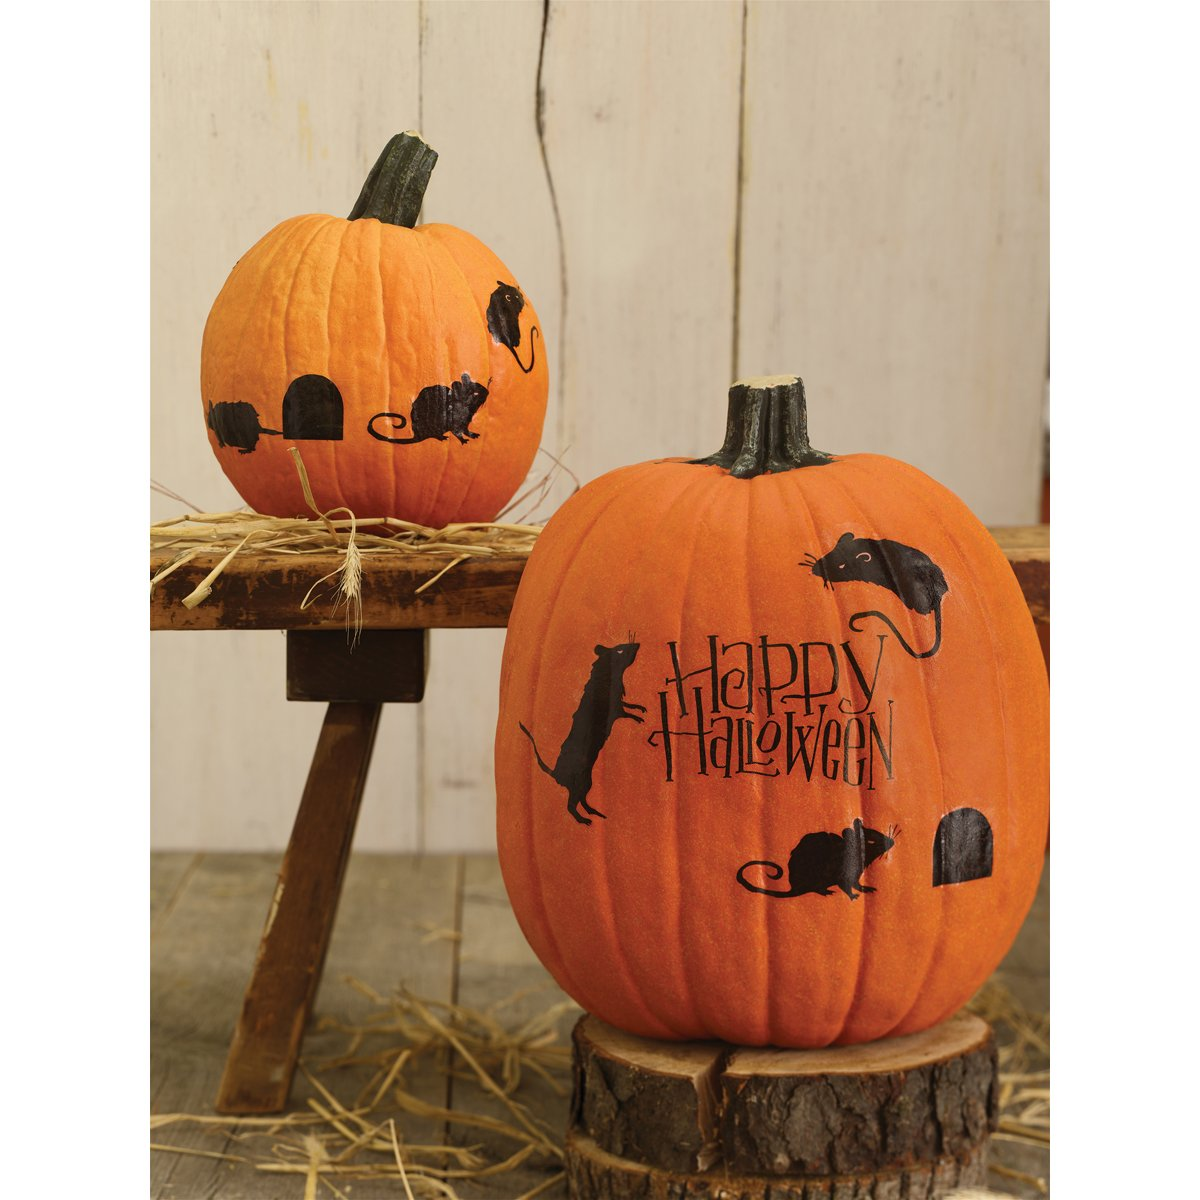 amazoncom martha stewart crafts happy halloween mice pumpkin transfers - Halloween Decorations Martha Stewart